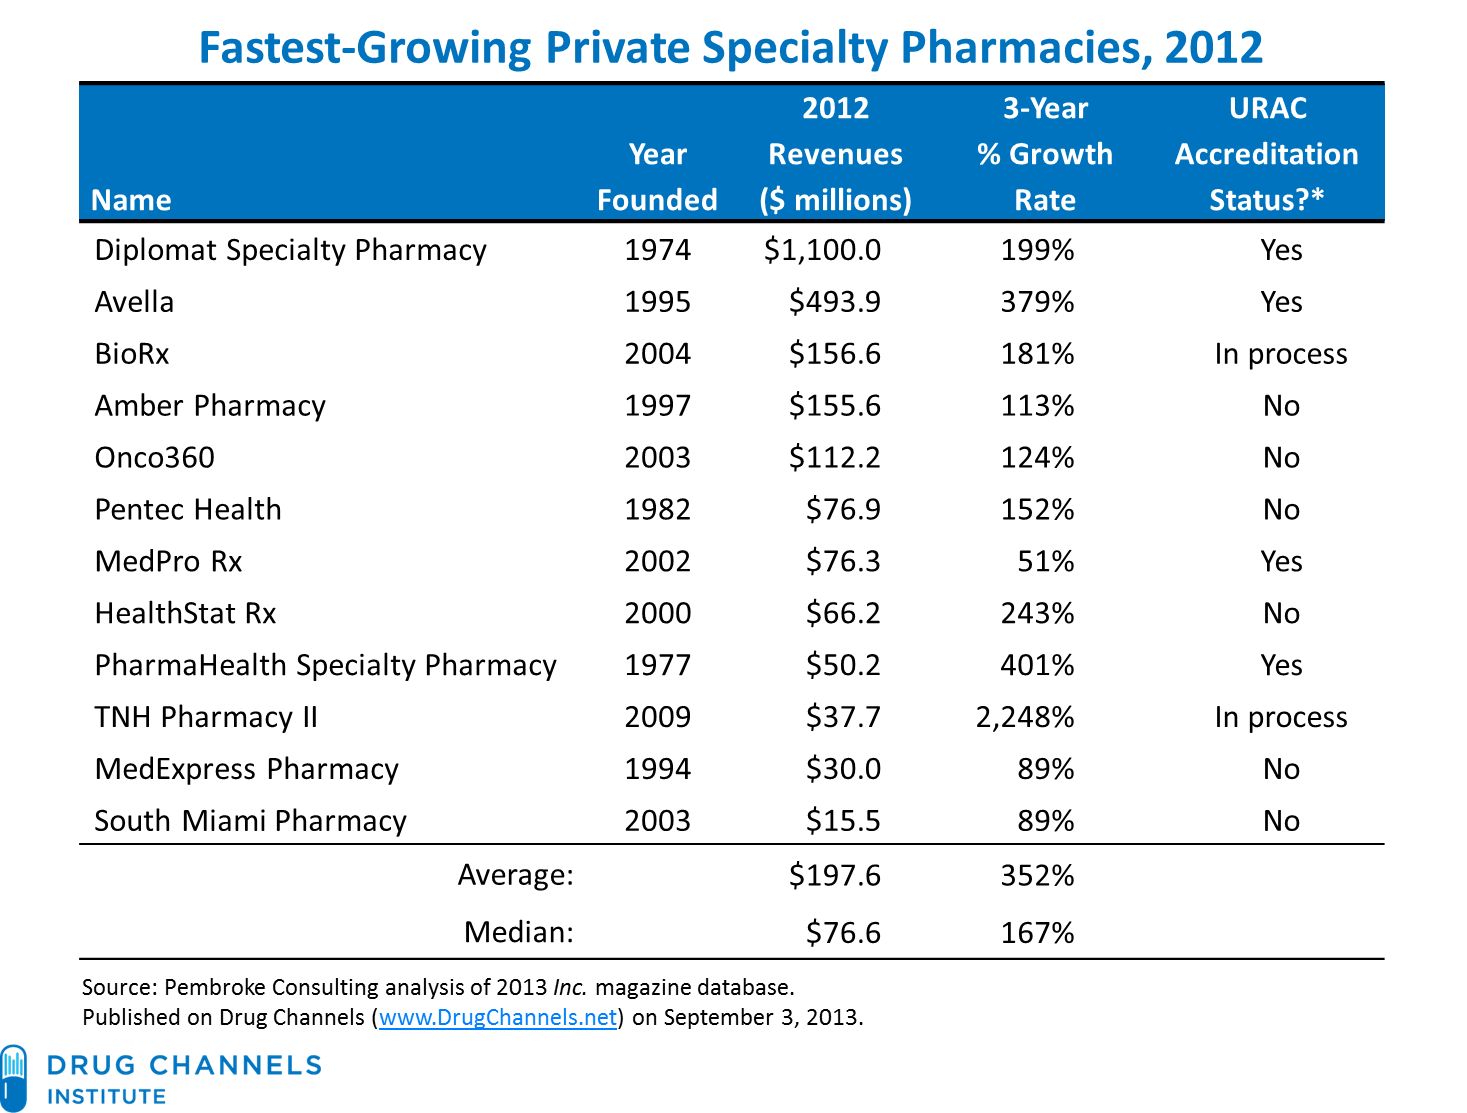 Tnh pharmacy lawsuit - Fun Facts About The Specialty Pharmacies On The 2013 List